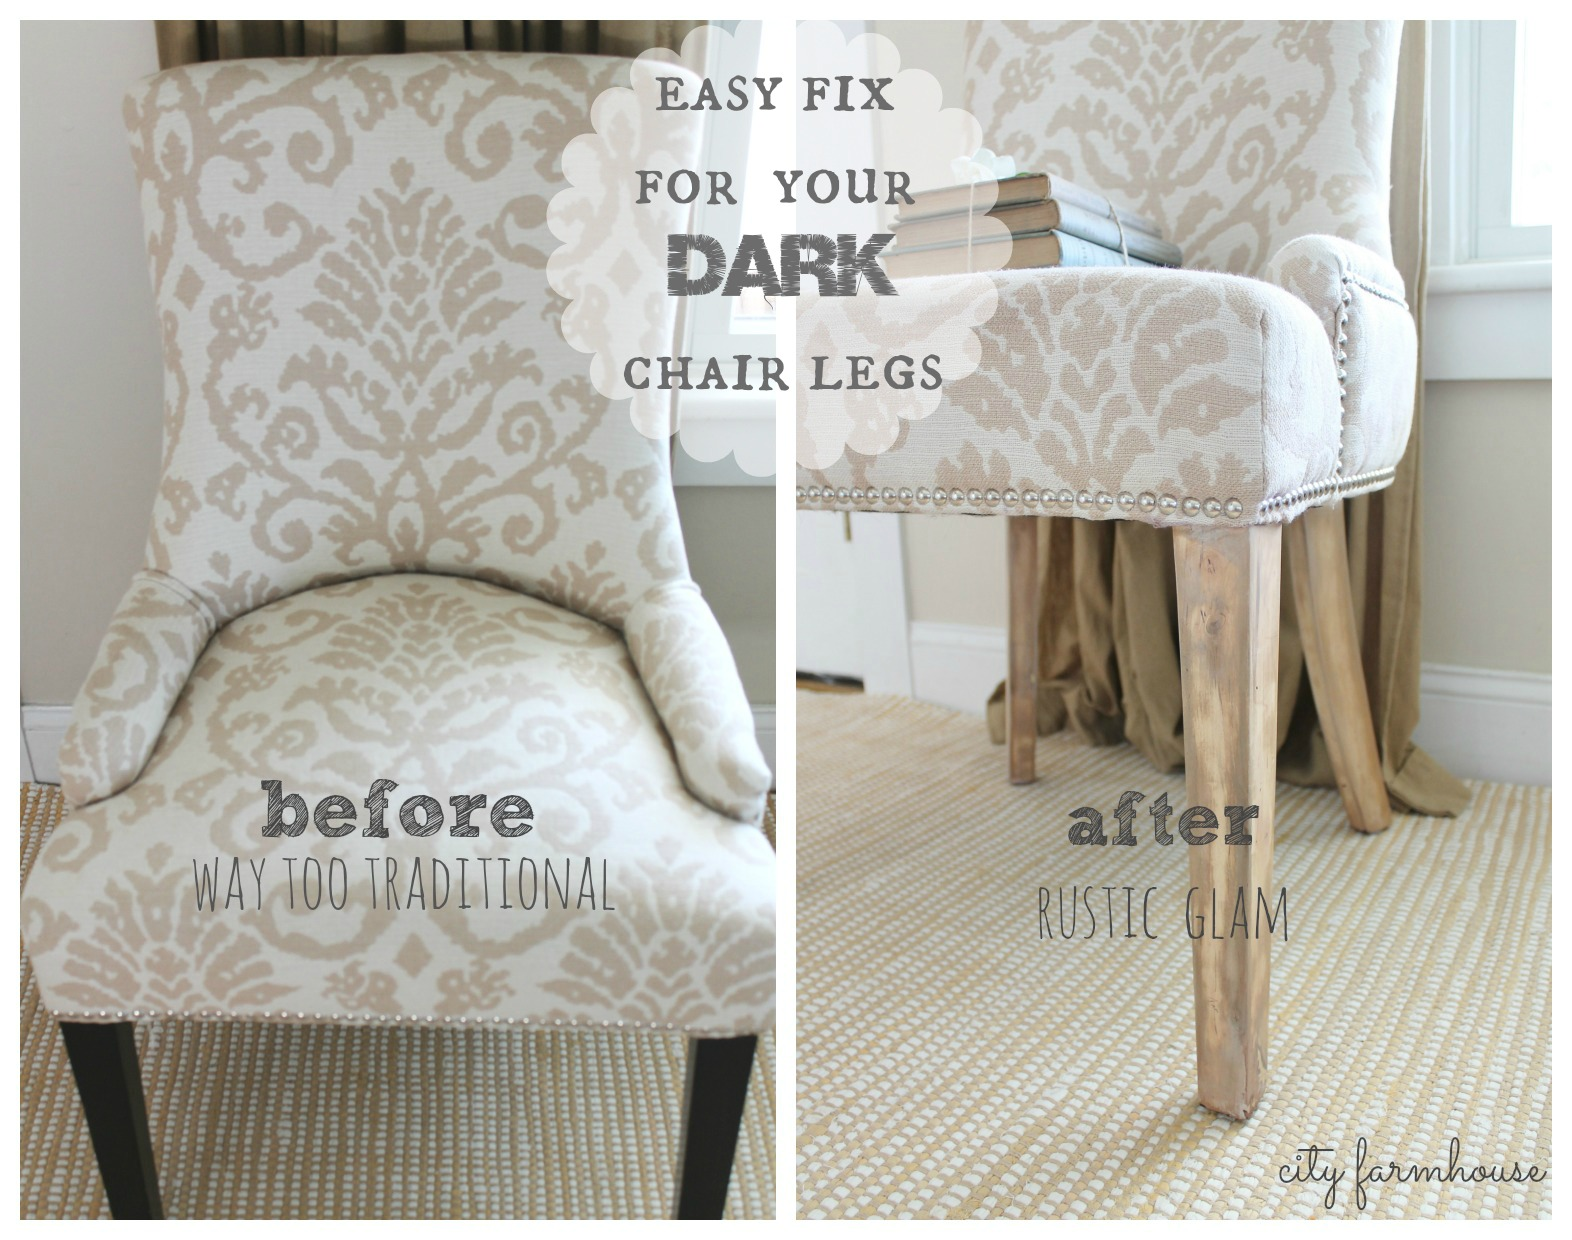 Before U0026 After Change The Look Of Your Chair Legs City Farmhouse 2